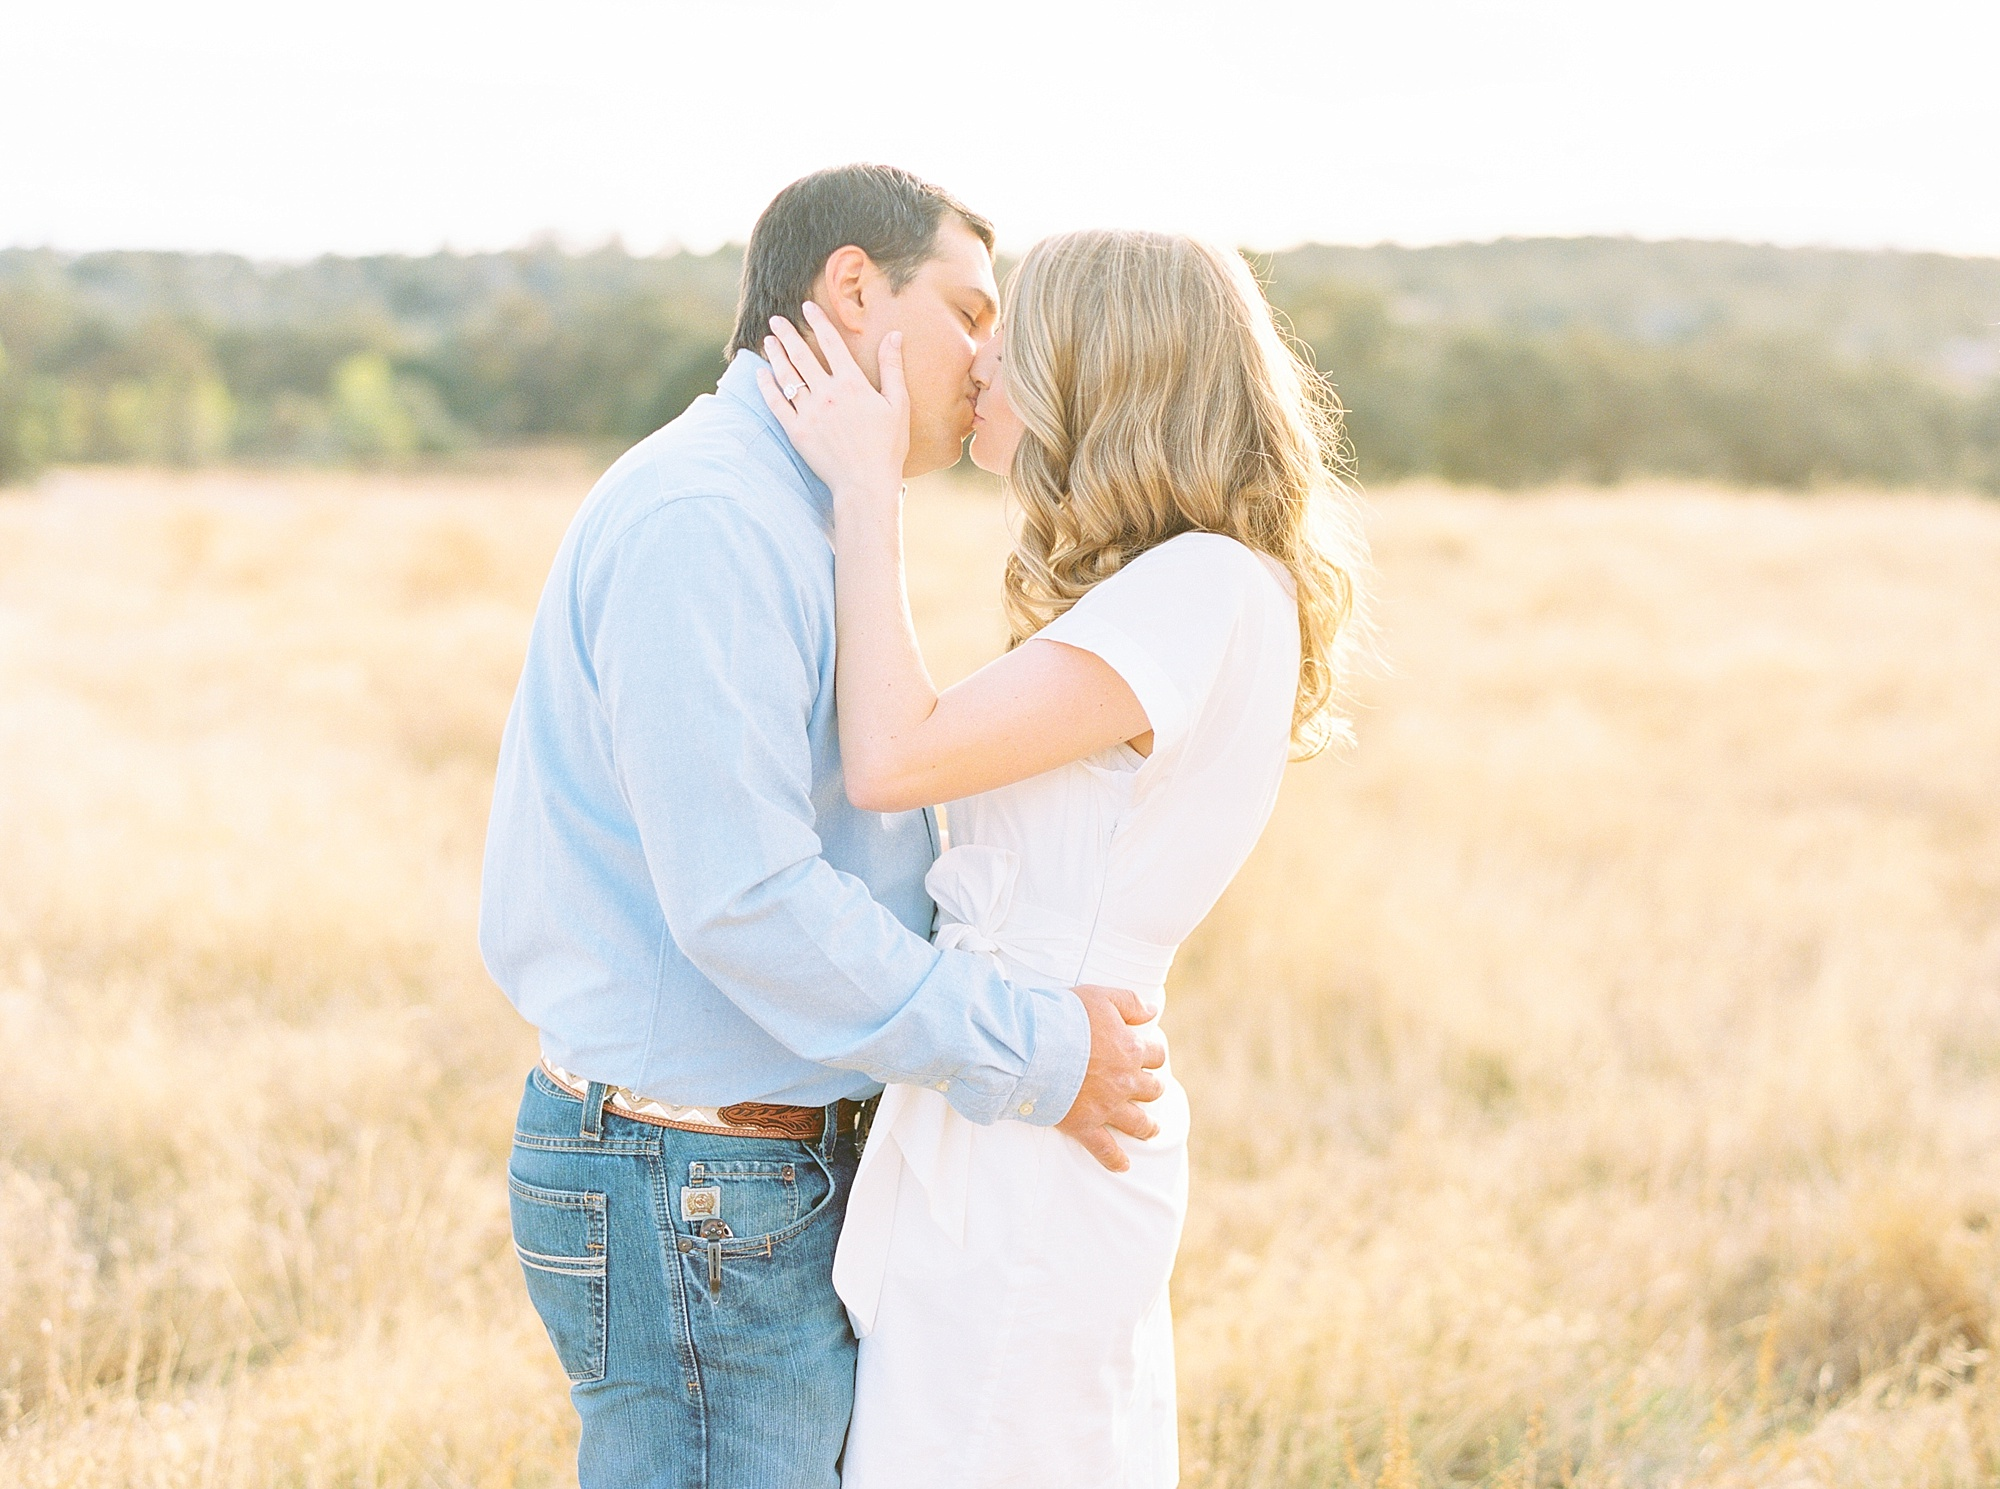 Golden Hills Engagement Session - Film Engagement Session - Ashley Baumgartner - Sacramento Wedding Photography - Stone Barn Ranch Wedding Couple_0005.jpg